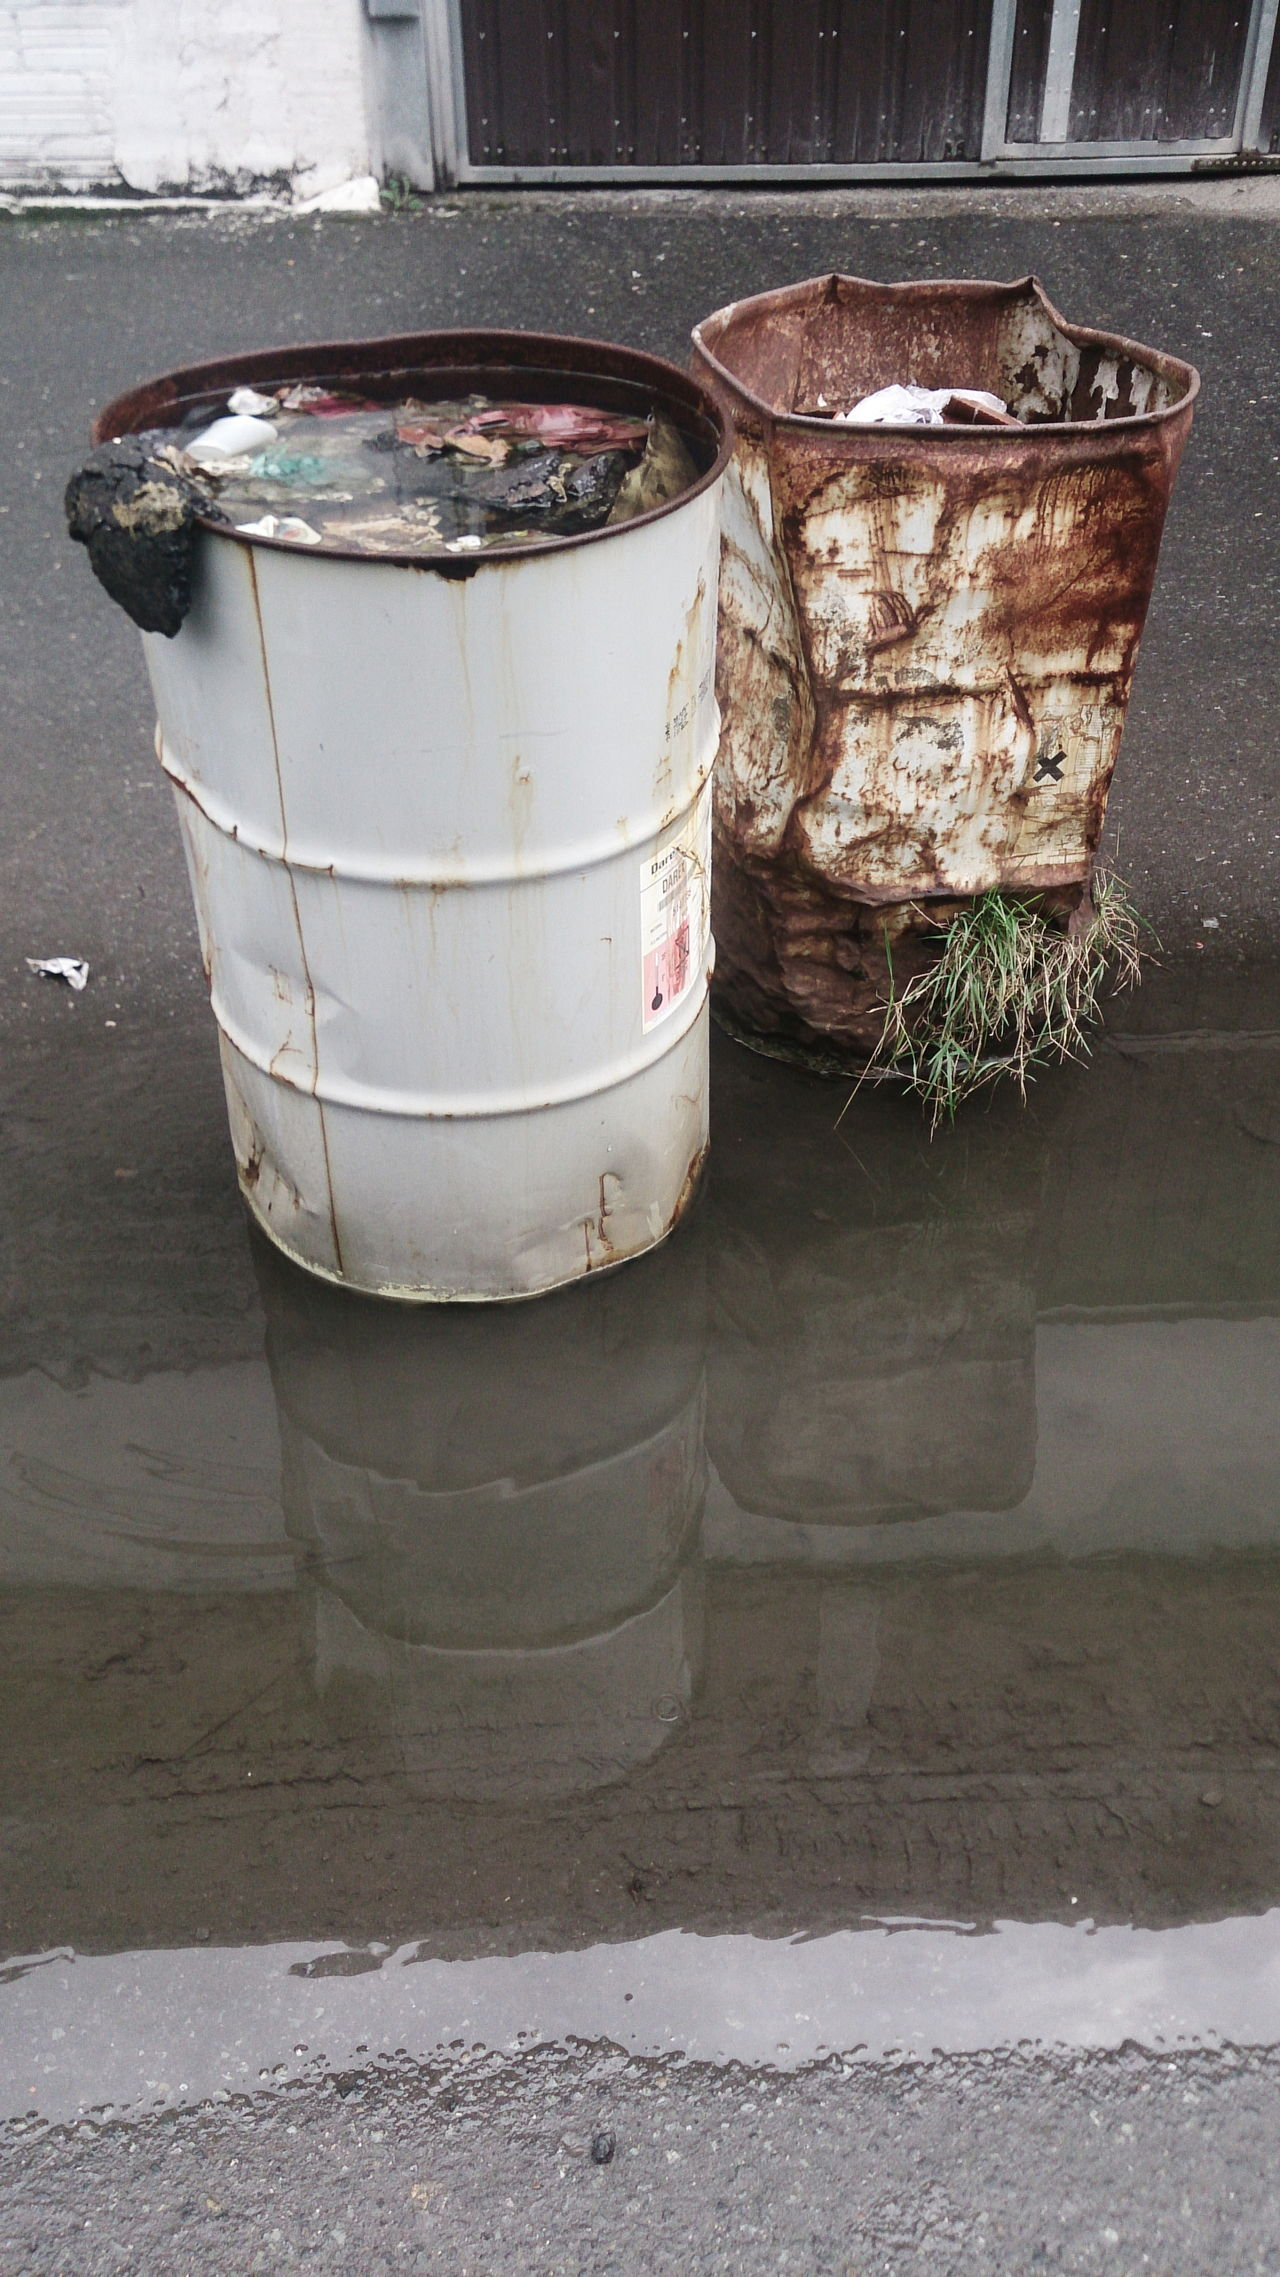 abandoned drums Abandoned Close-up Container Day Drums No People Outdoors Oxidation Rubbish Water